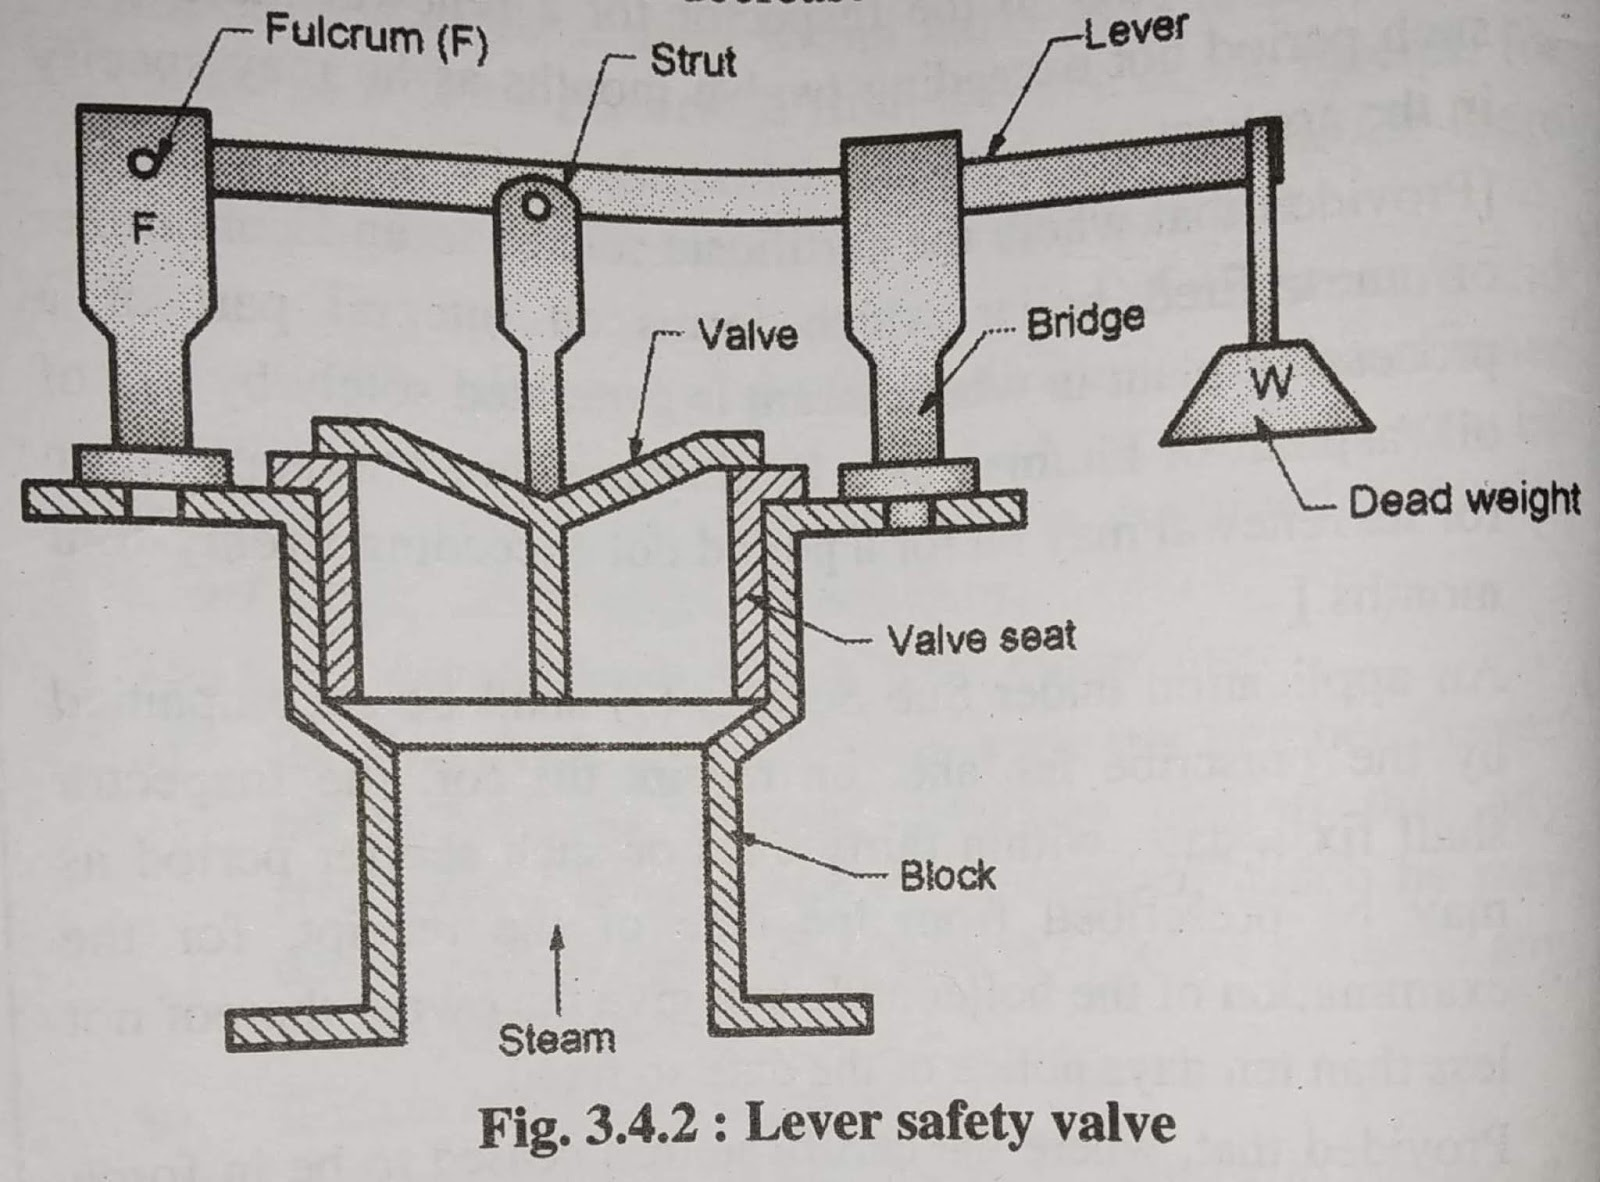 lever safety valve assembly drawing  [ 1600 x 1182 Pixel ]